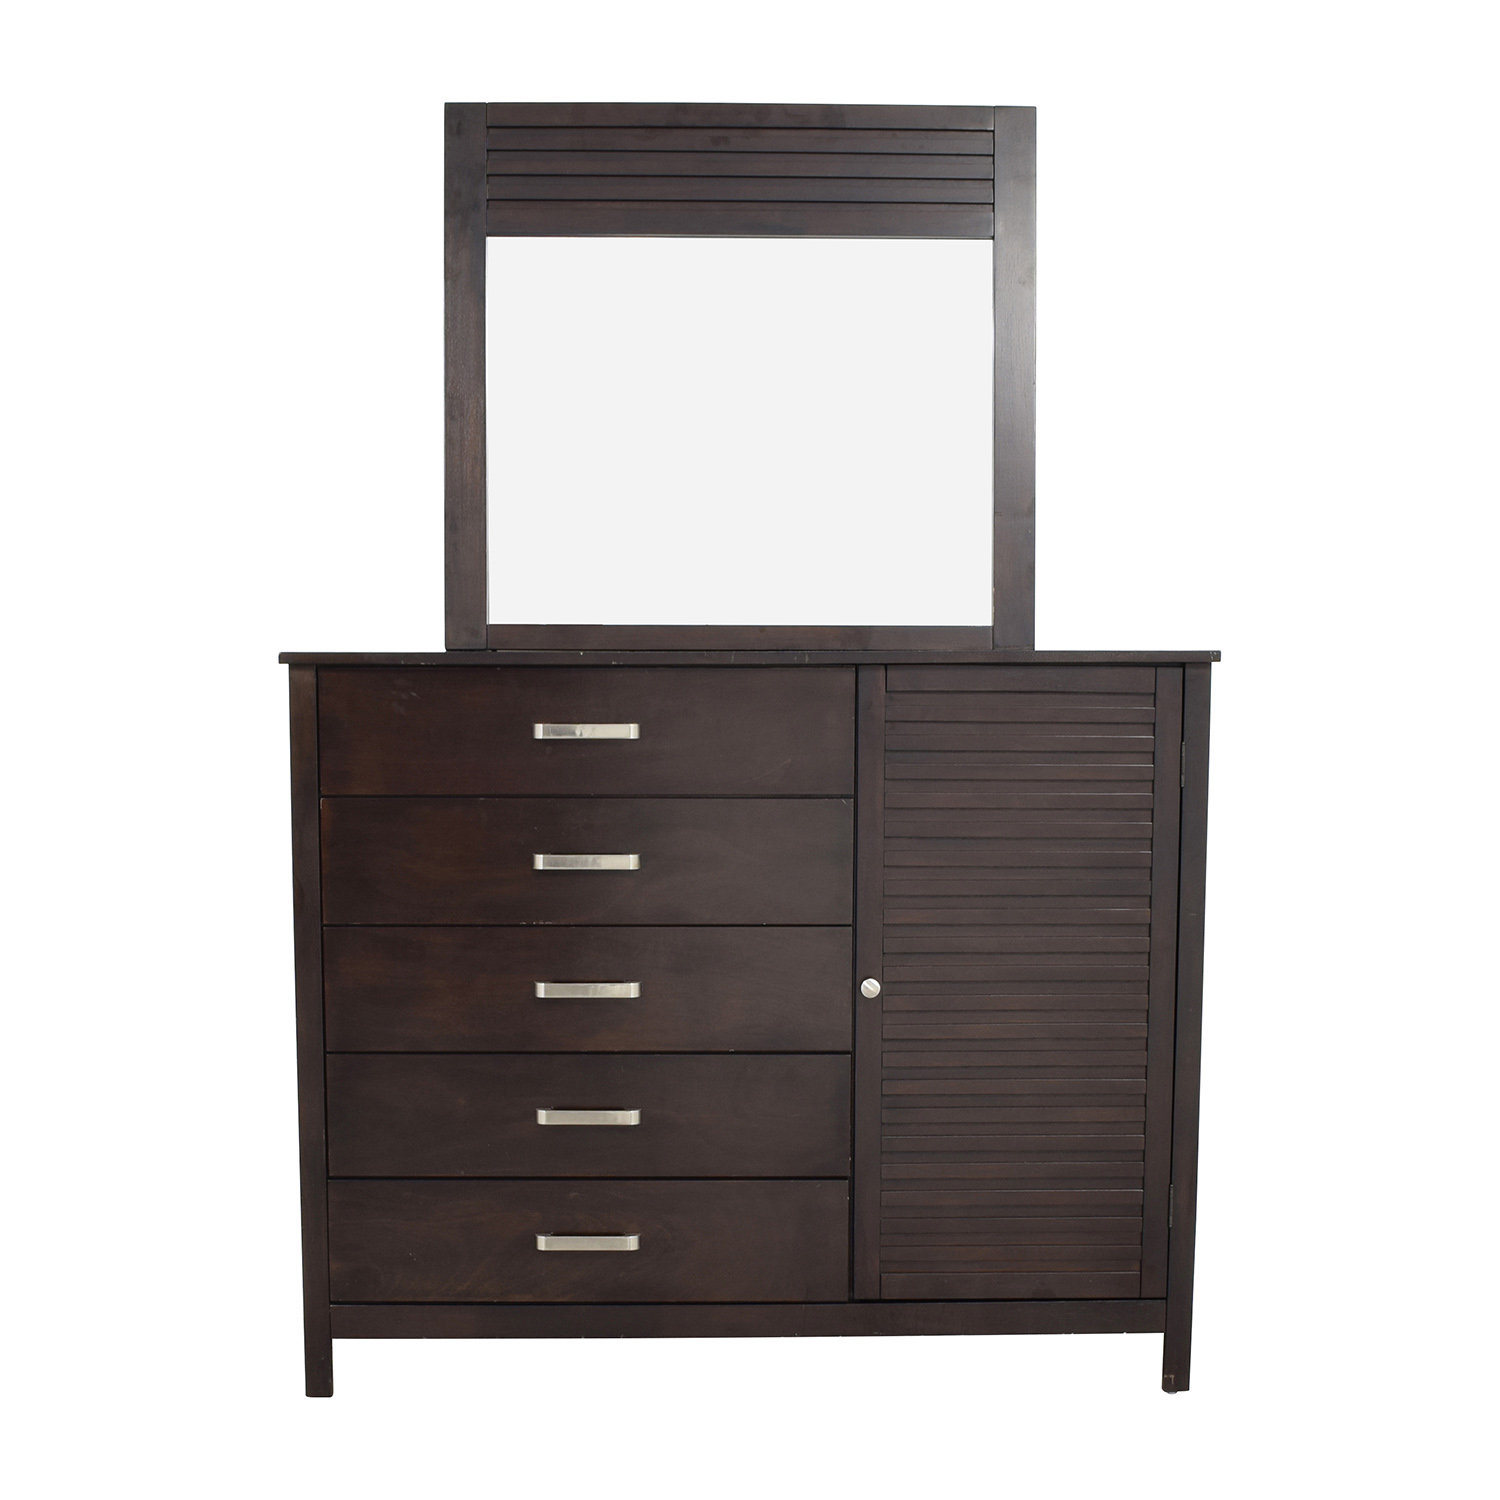 shop Rooms To Go Rooms to Go Espresso Grove Five-Drawer Dresser with Mirror online